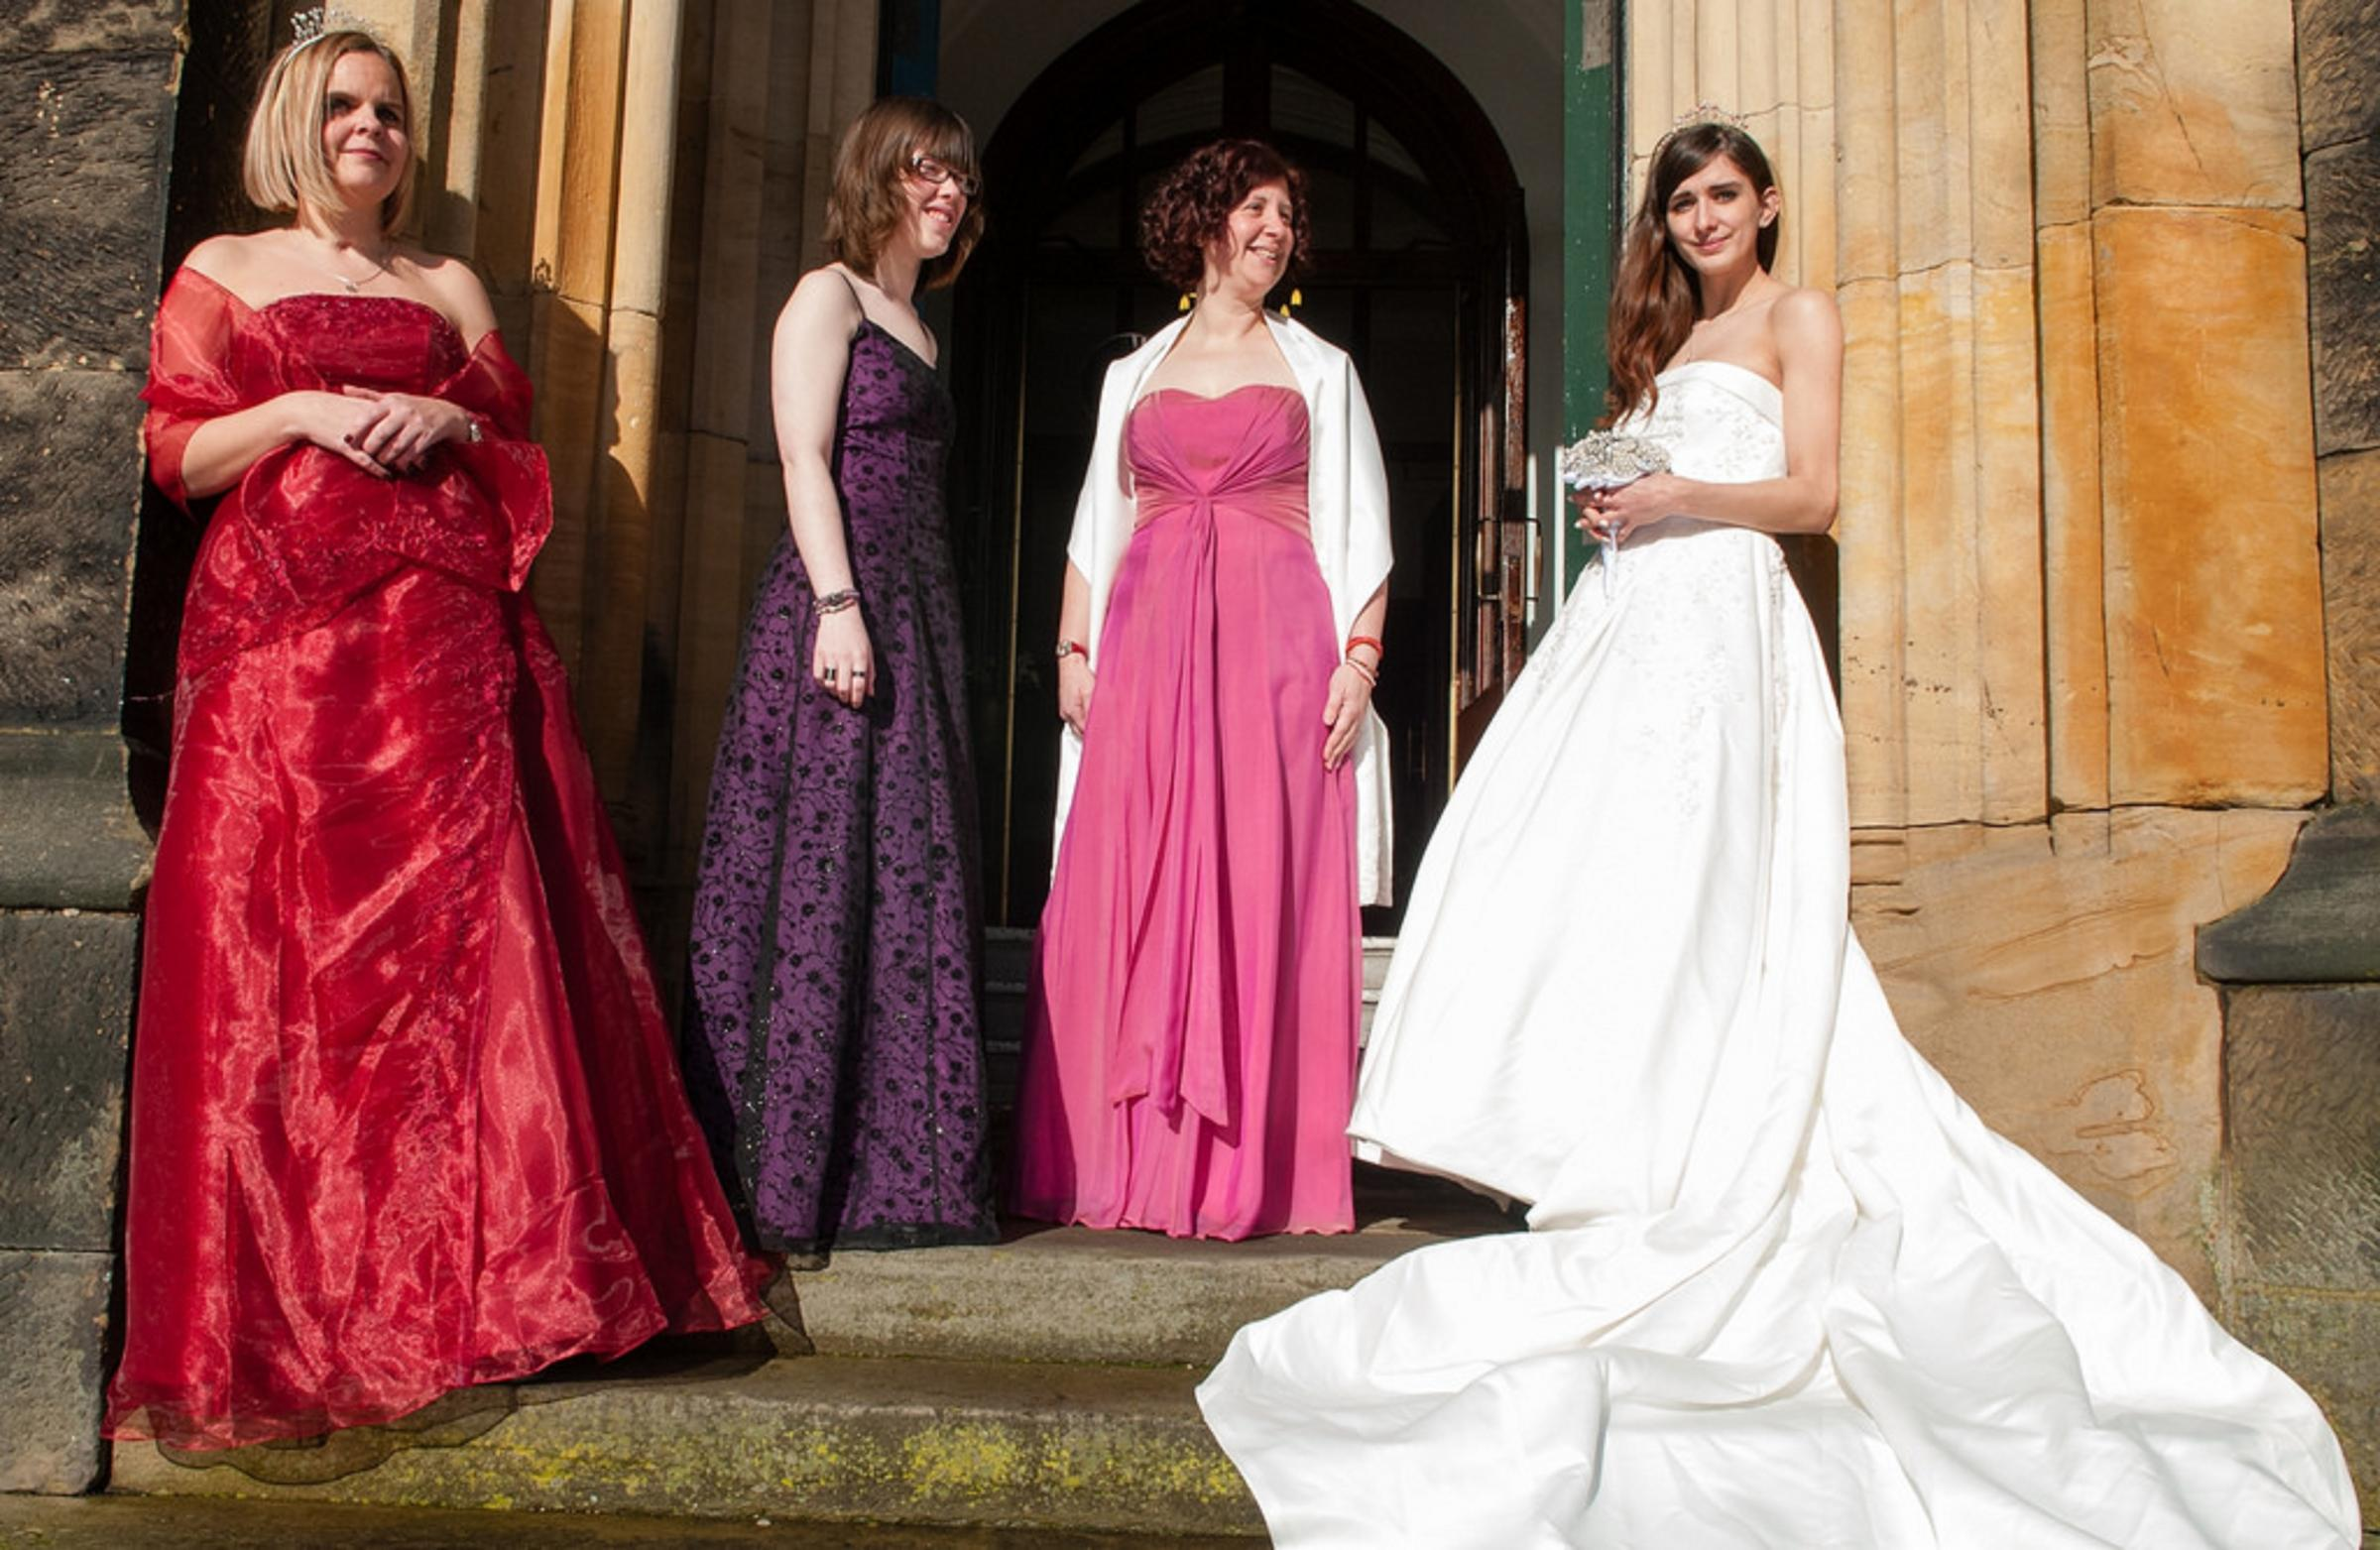 Modelling some of the wedding outfits for sale, left to right - Kerry Payne, Sophie Byatt, Nikki